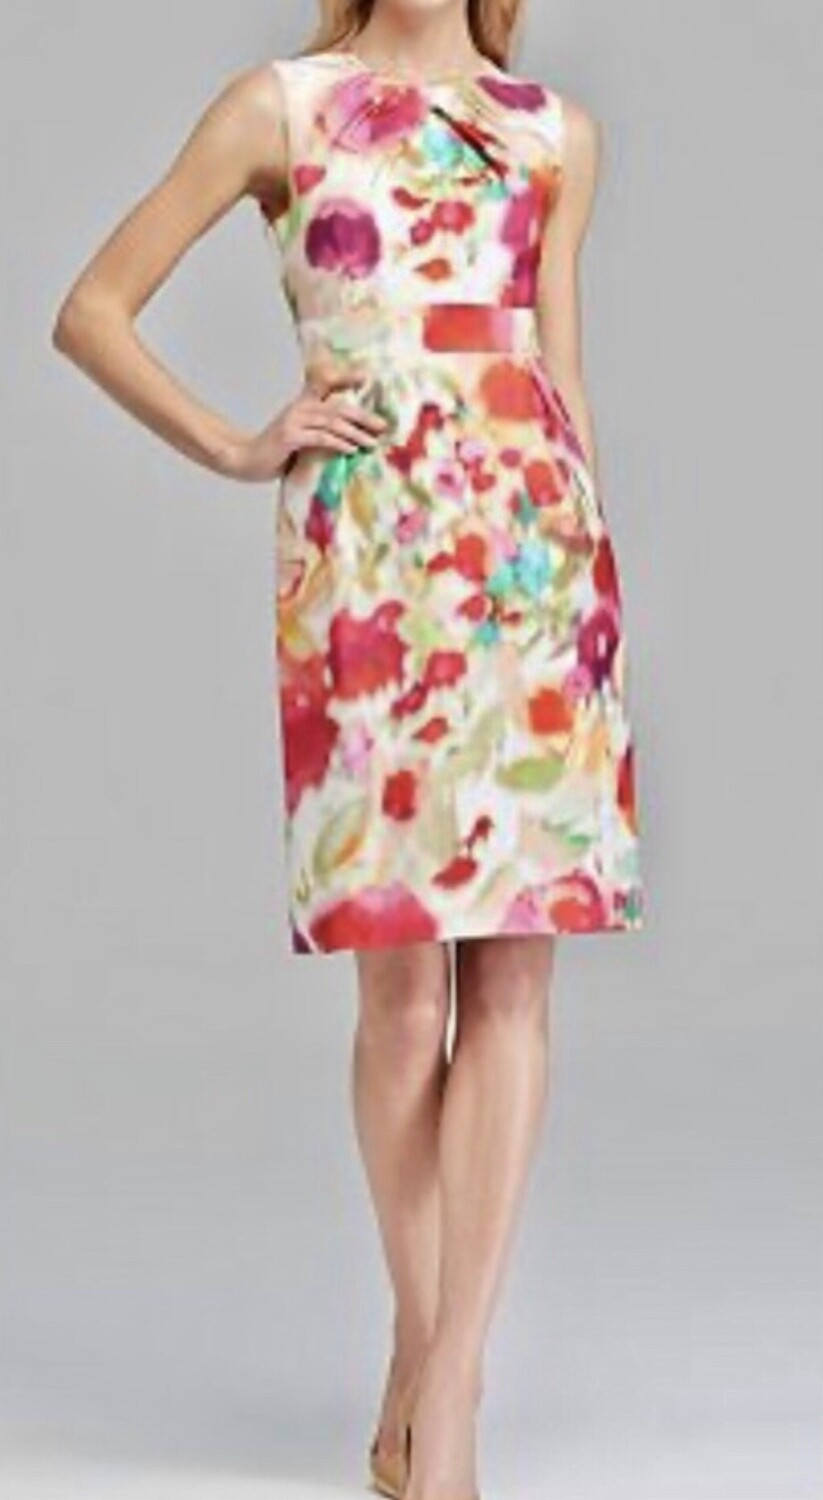 KATE SPADE Watercolor Floral Bowden Dress size 10